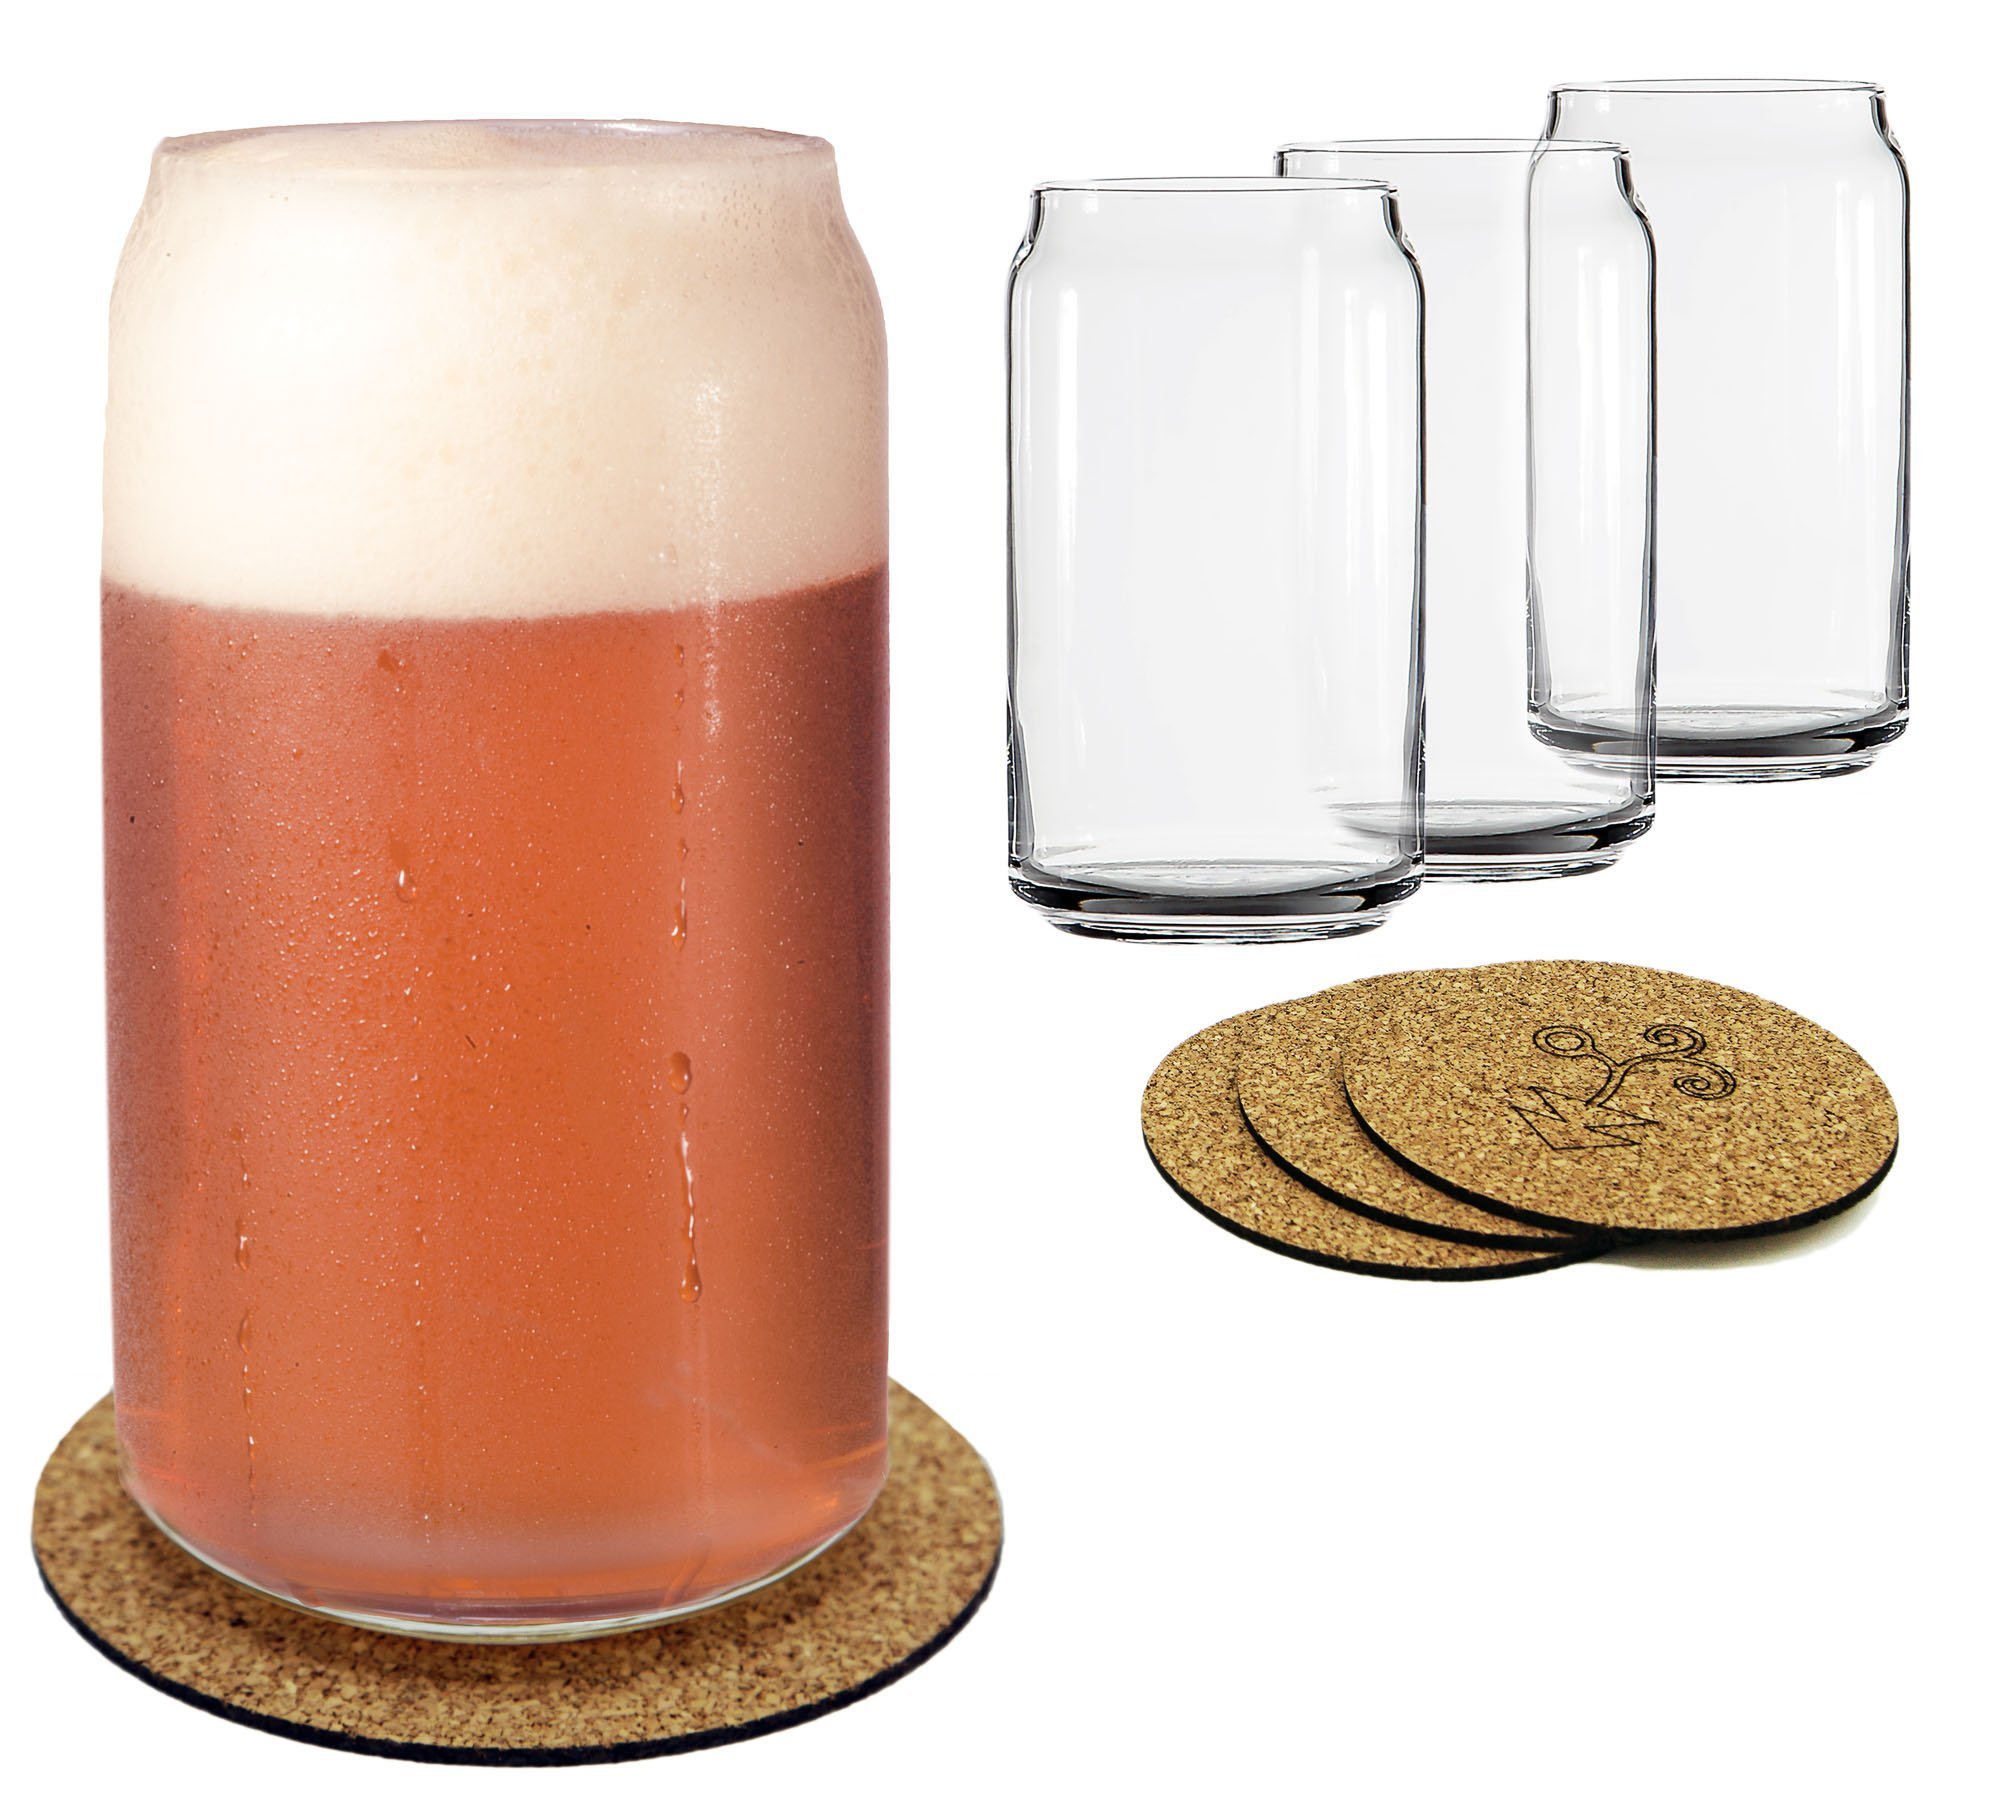 Ecodesign Drinkware Libbey Beer Glass Can Shaped 16 oz - Pint Beer Glasses 4 PACK w/coasters by Ecodesign Drinkware (Image #6)